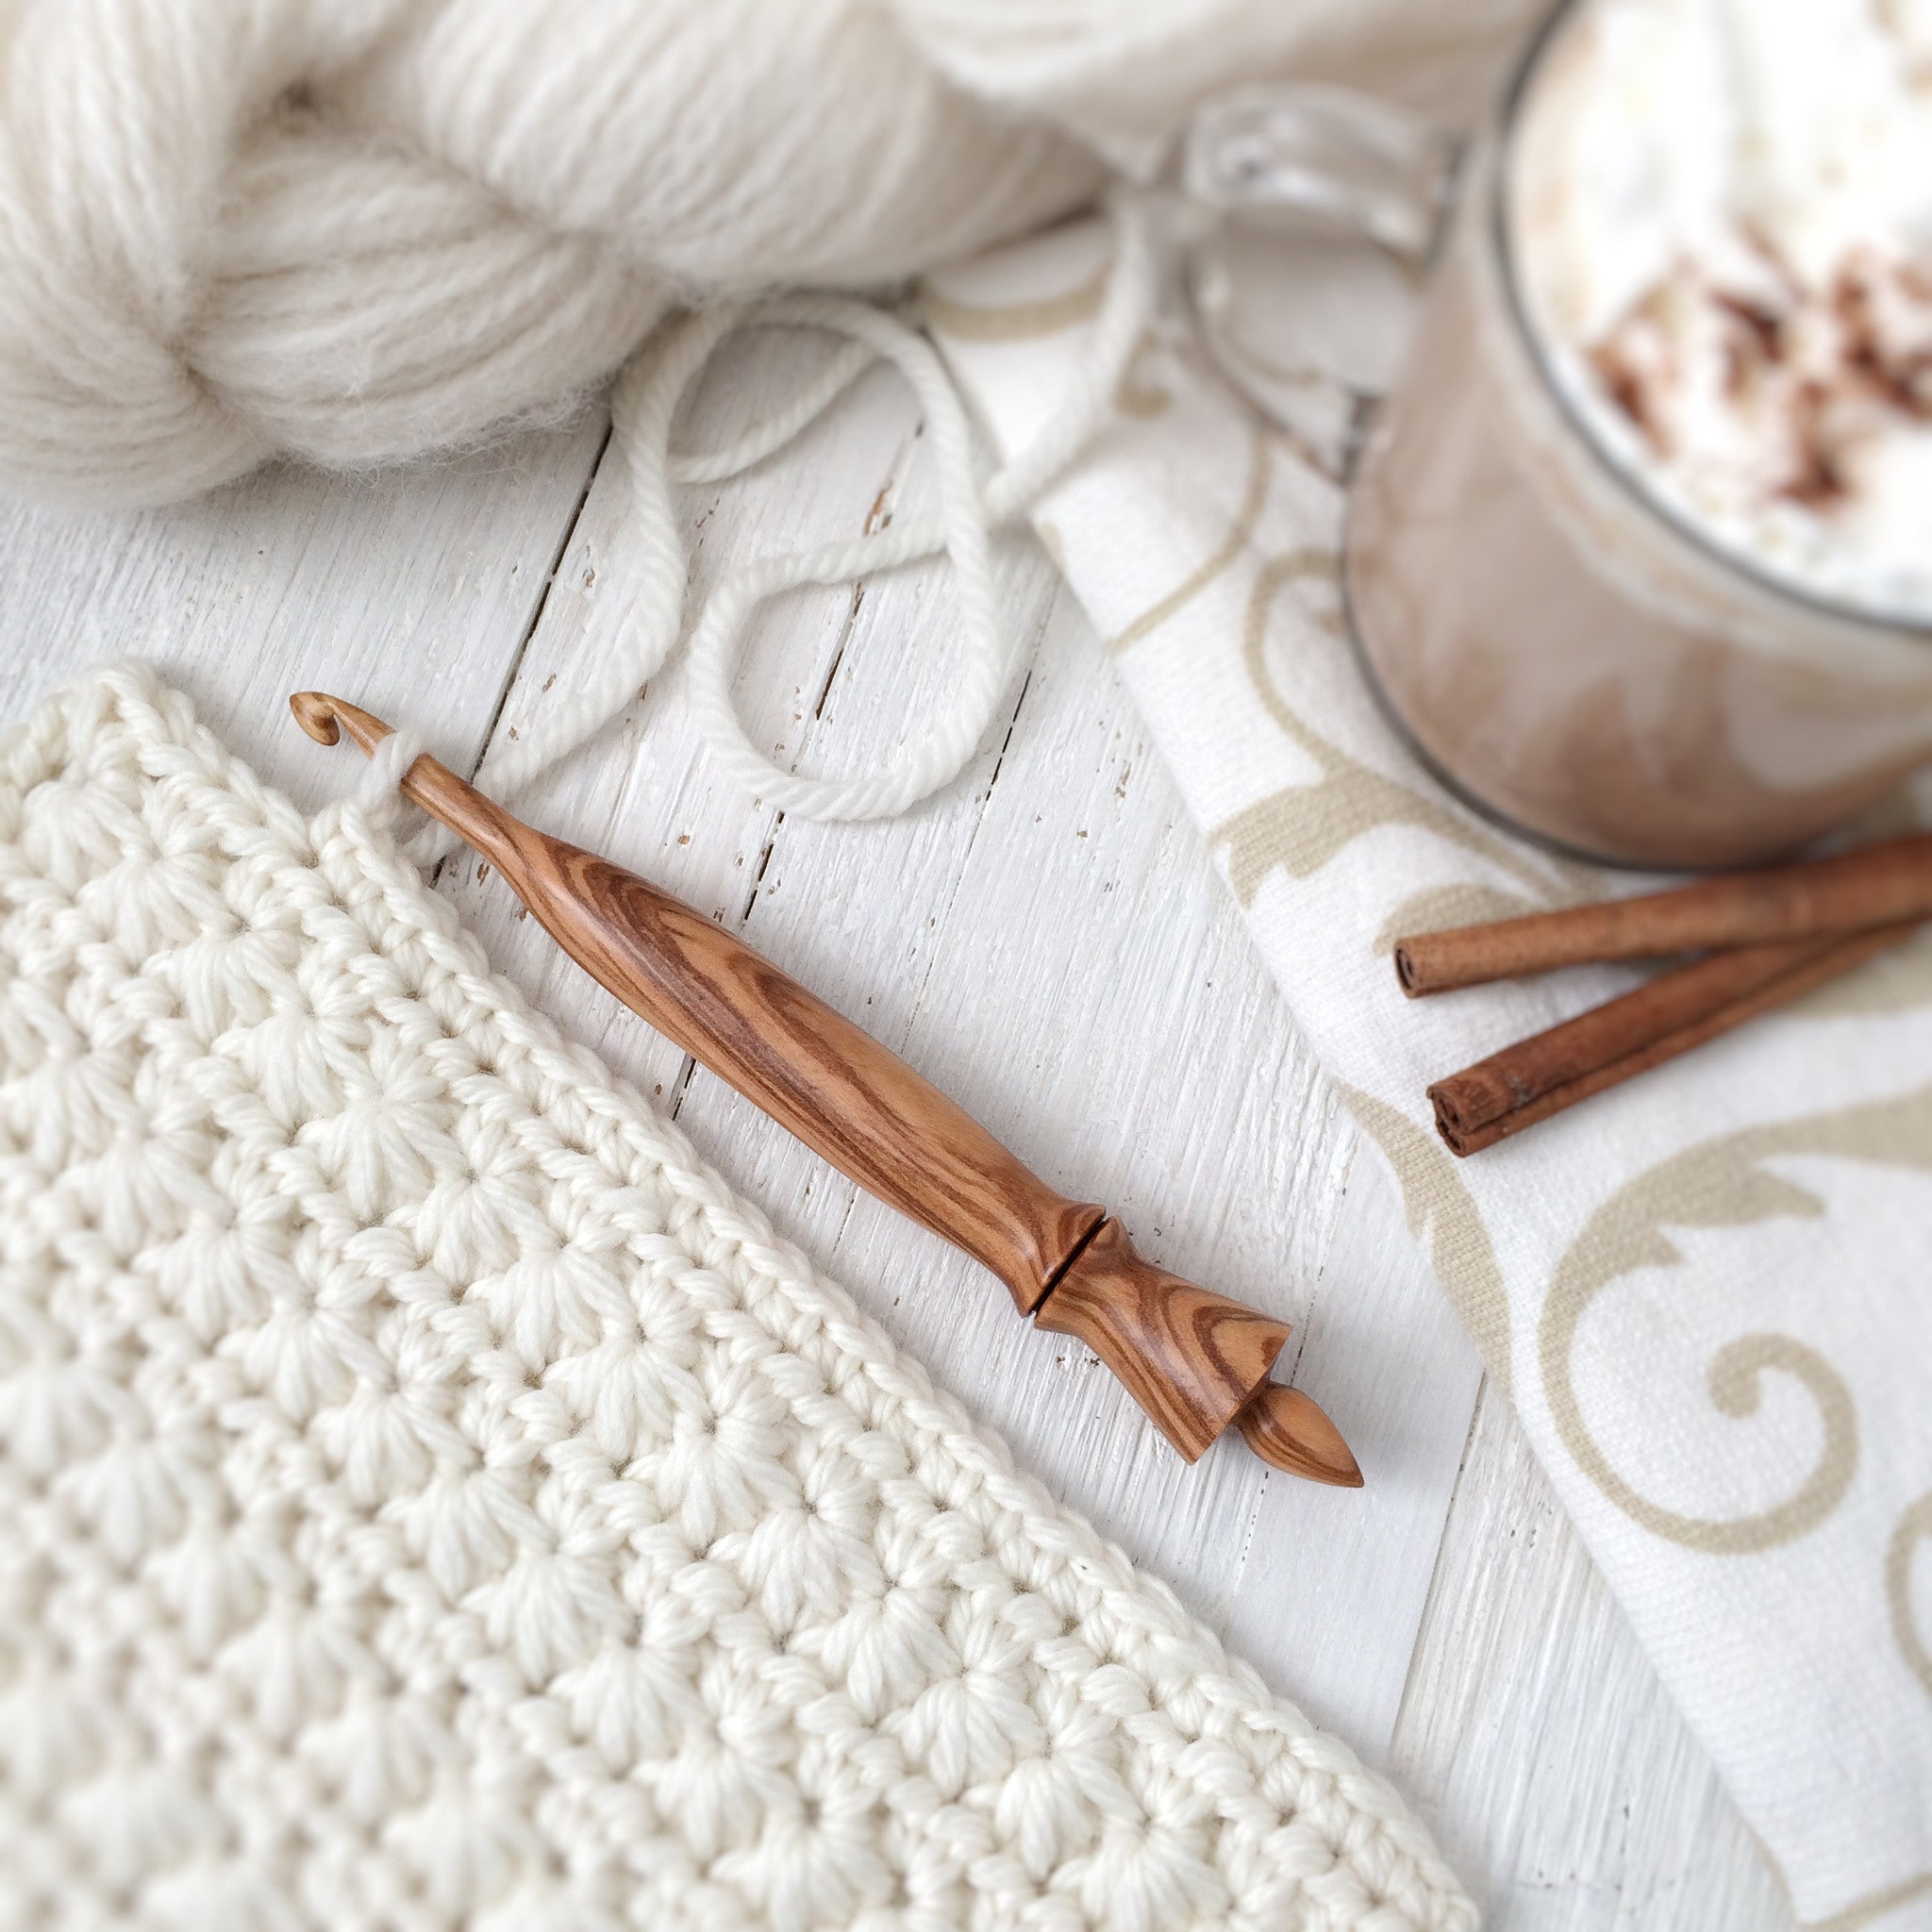 FLASH SALE: Olivewood Crochet Hooks